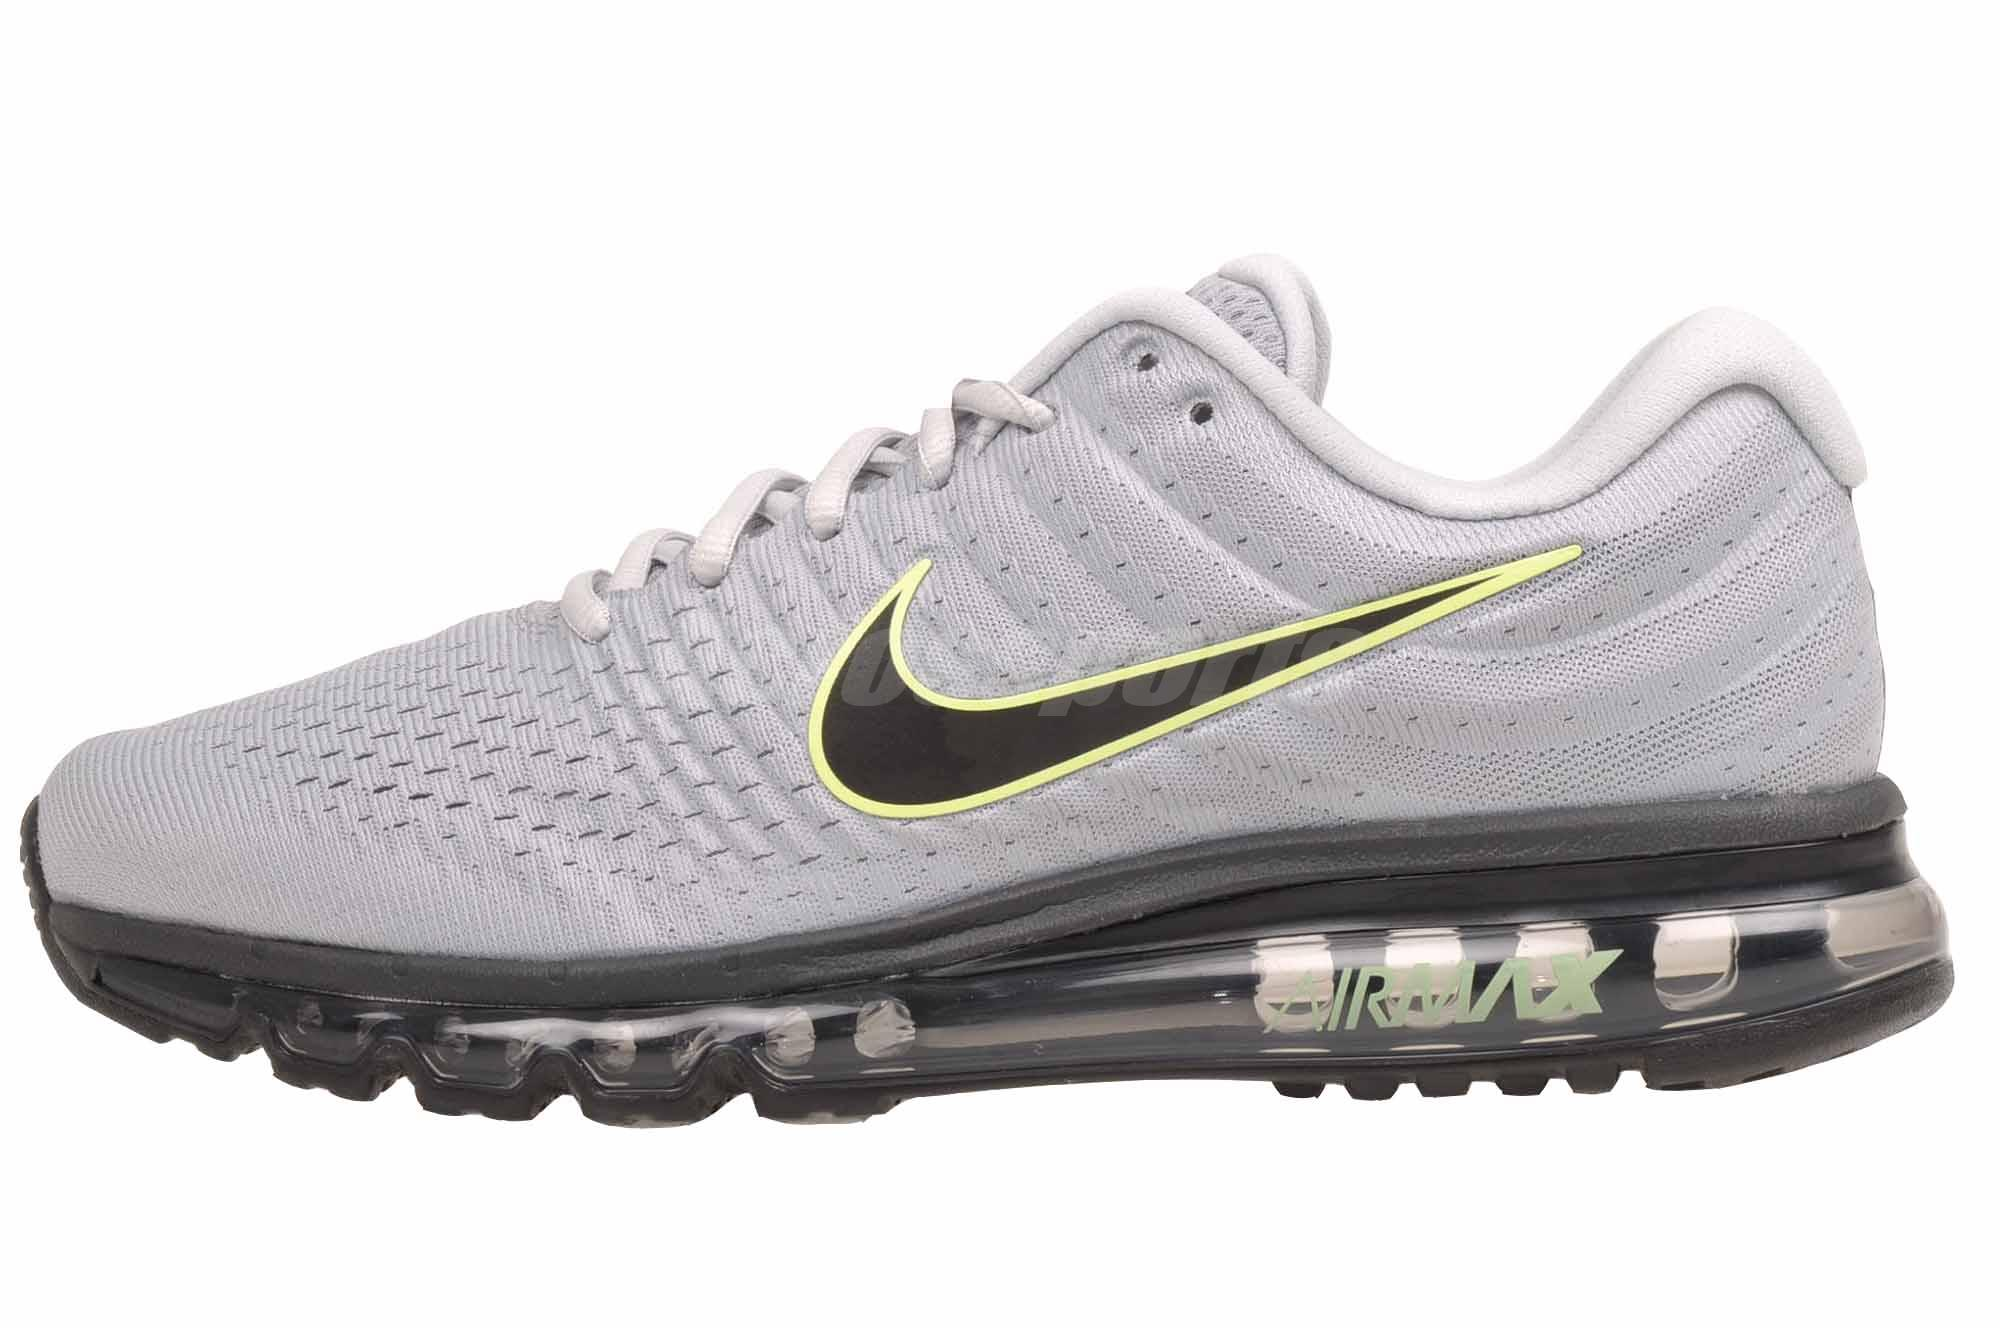 Details about Nike Air Max 2017 Running Mens Shoes Wolf Grey 849559 012